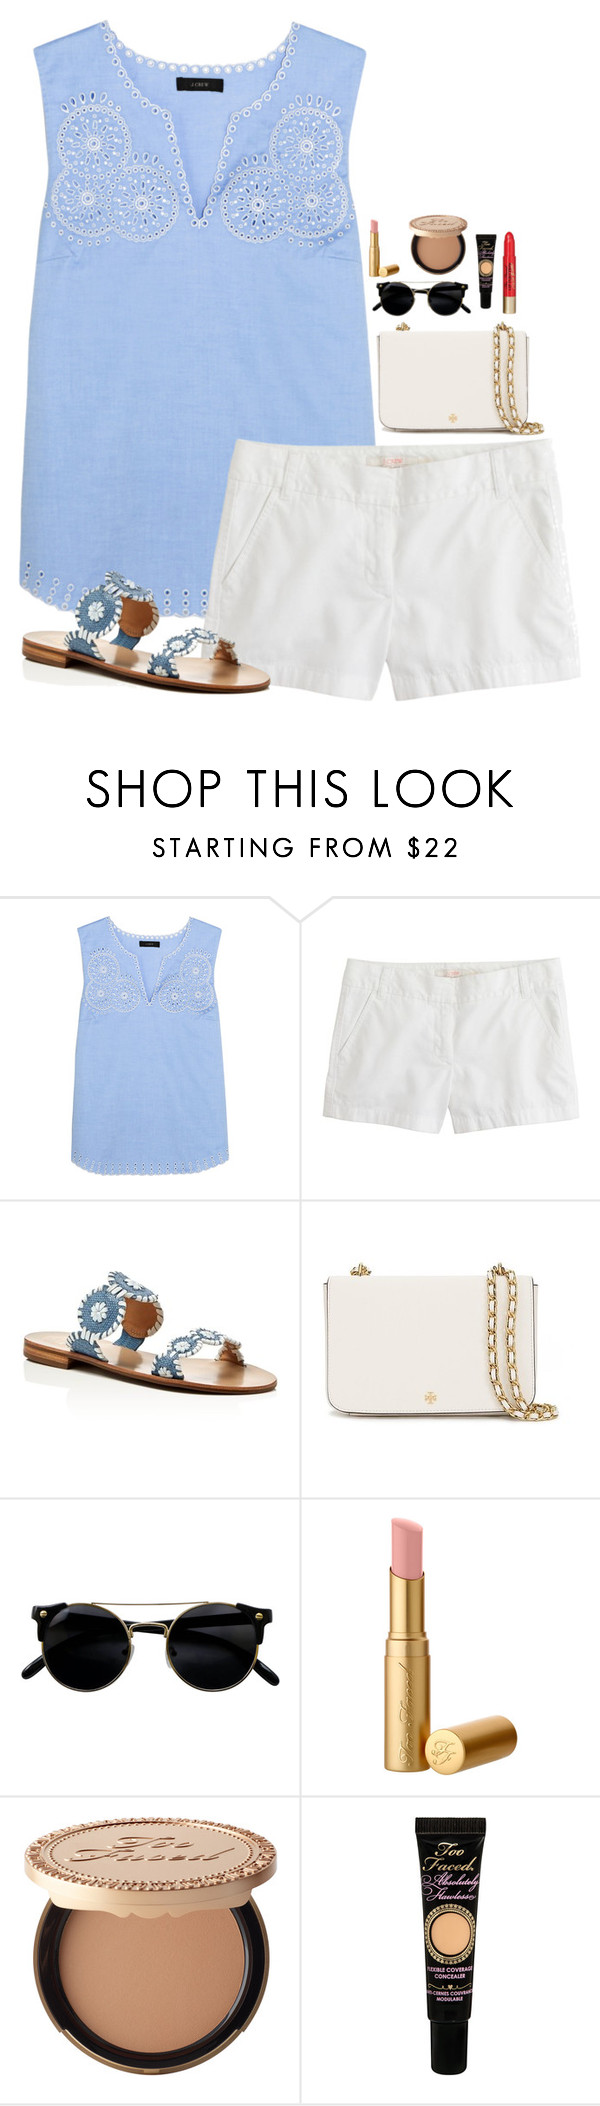 """""""Baby, I can feel your halo"""" by leawhite ❤ liked on Polyvore featuring J.Crew, Jack Rogers, Tory Burch and Too Faced Cosmetics"""